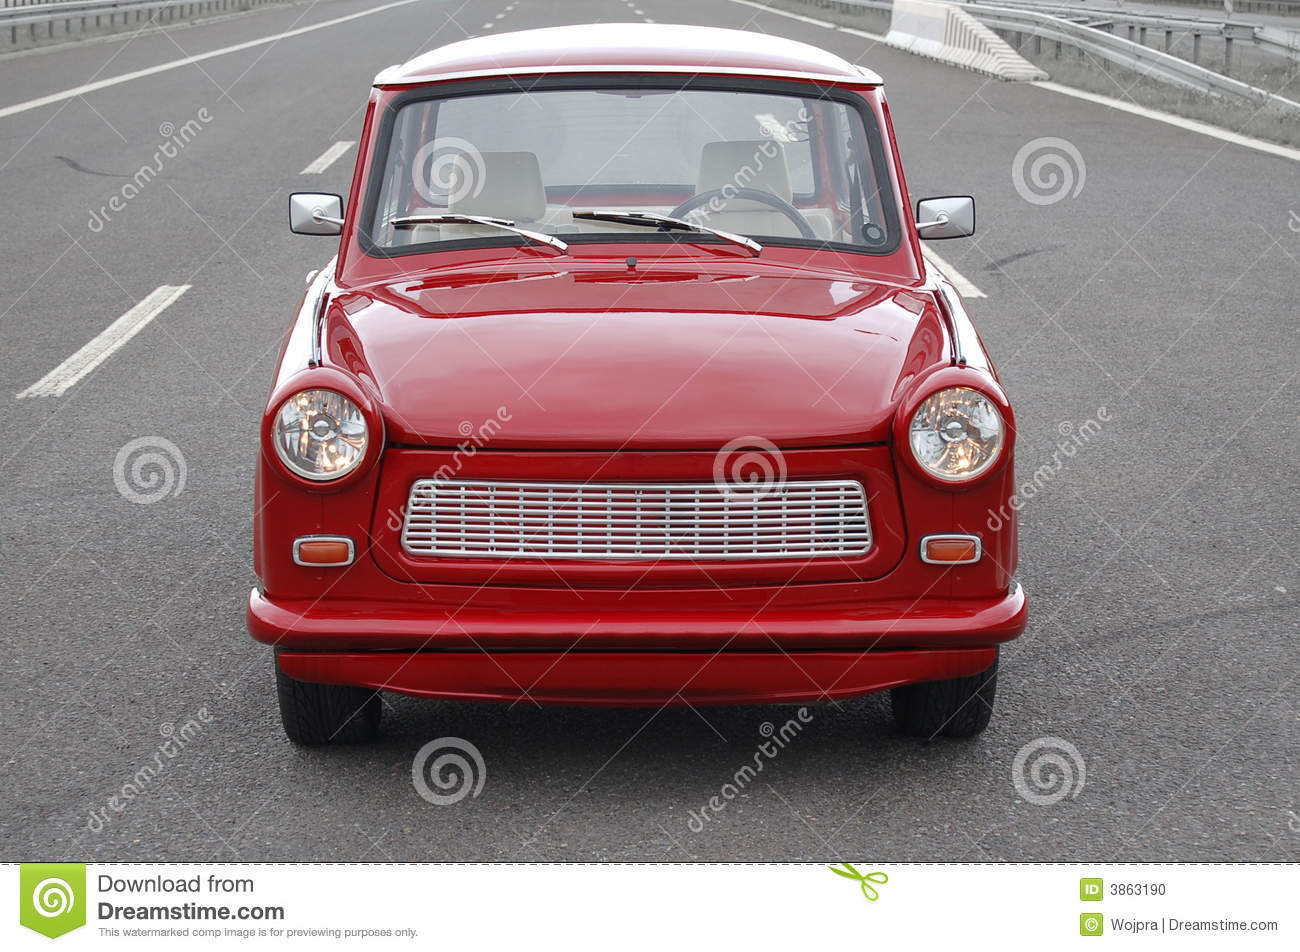 Trabant Clipart Trabant On A Highway Stock Photo Image Of Trabant Front 3863190